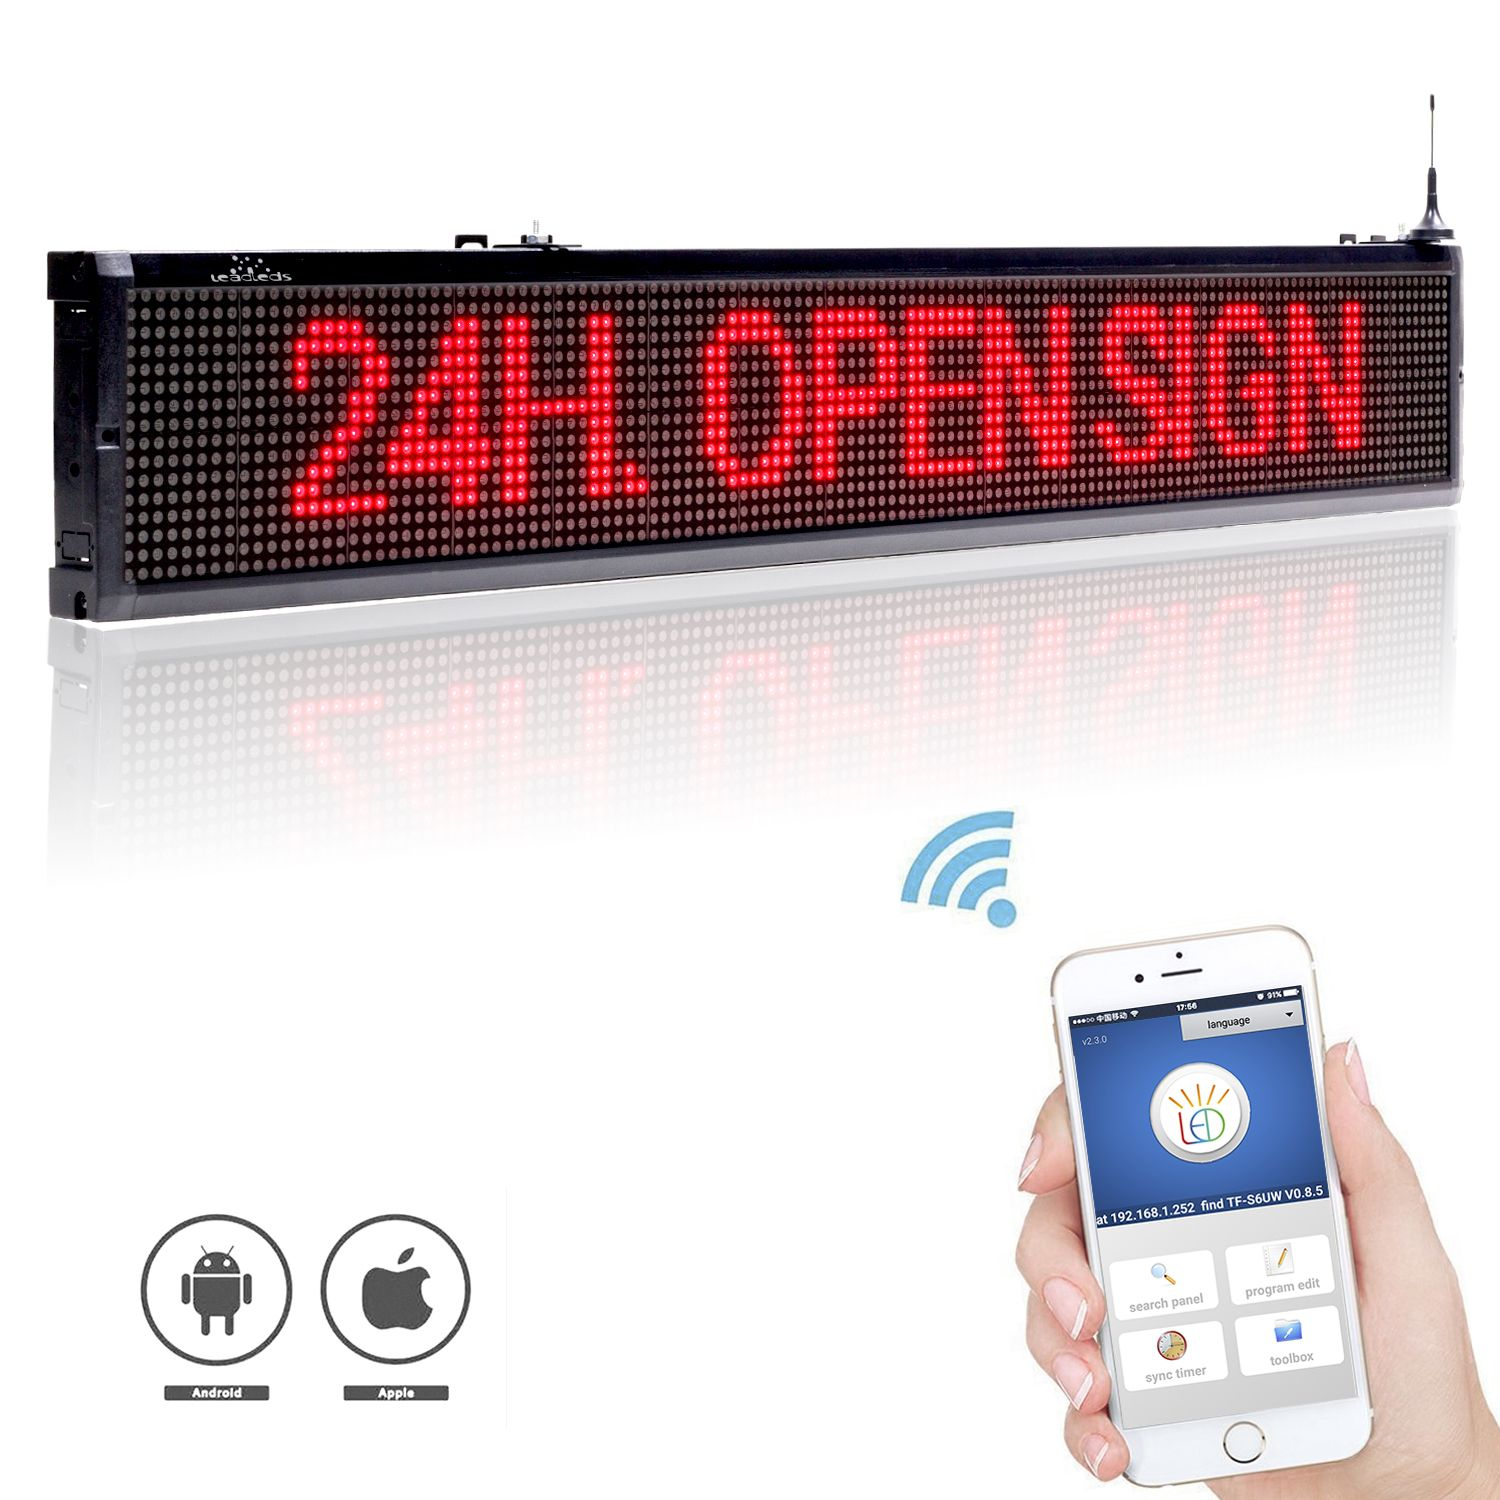 Leadleds Wireless Sign Easily Message Programmble By Smart Phone Both Android And Ios Surpported Android Wifi Led Display Screen Led Signs